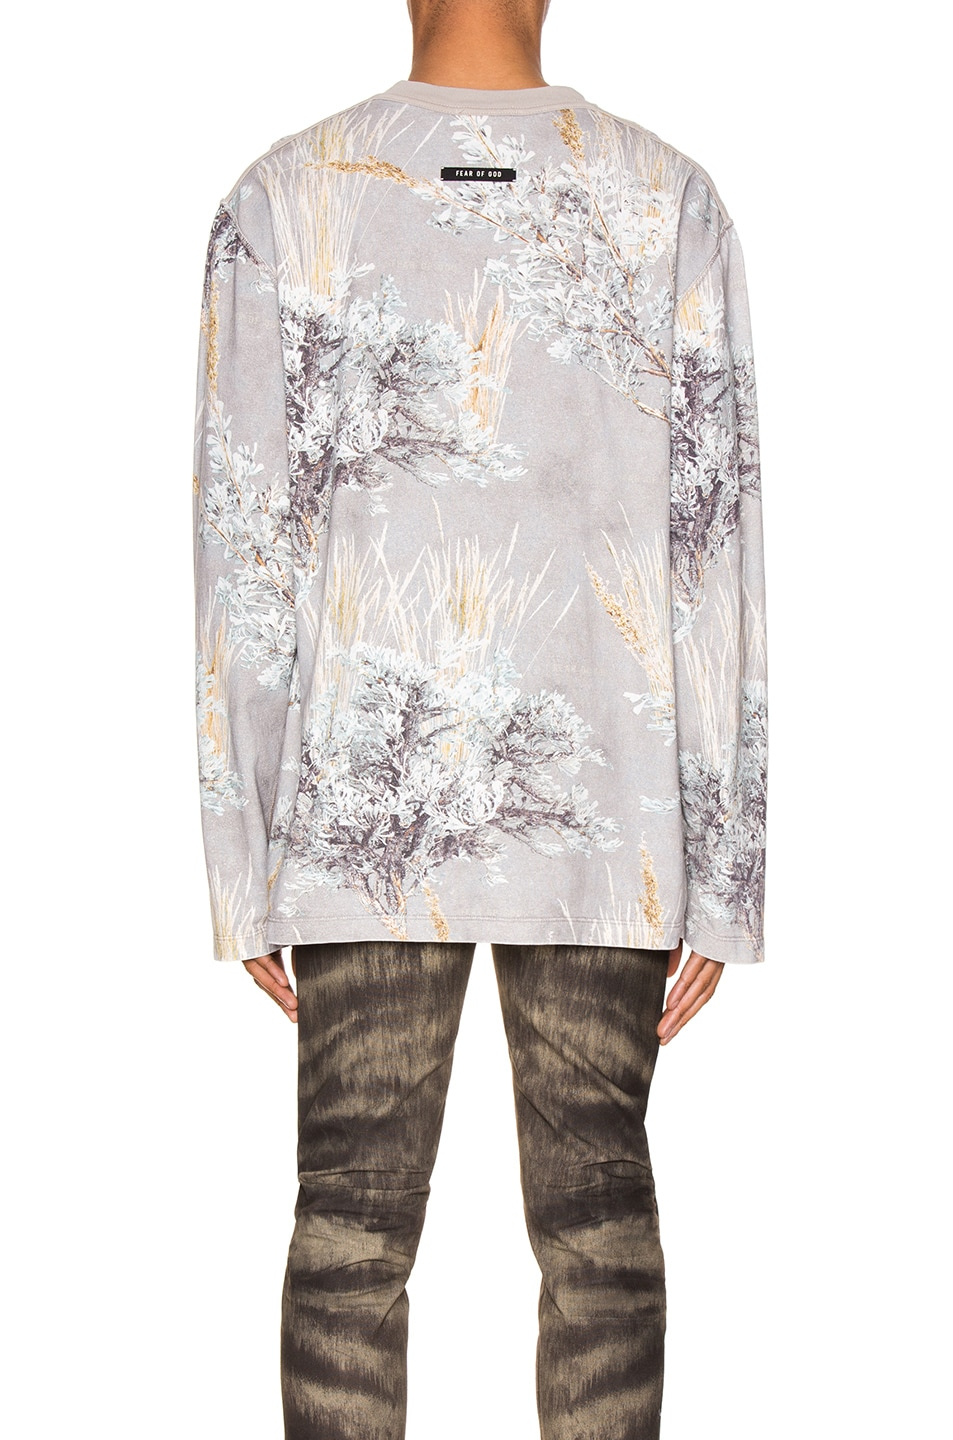 Image 3 of Fear of God Printed Long Sleeve Tee in Prarie Ghost Camo